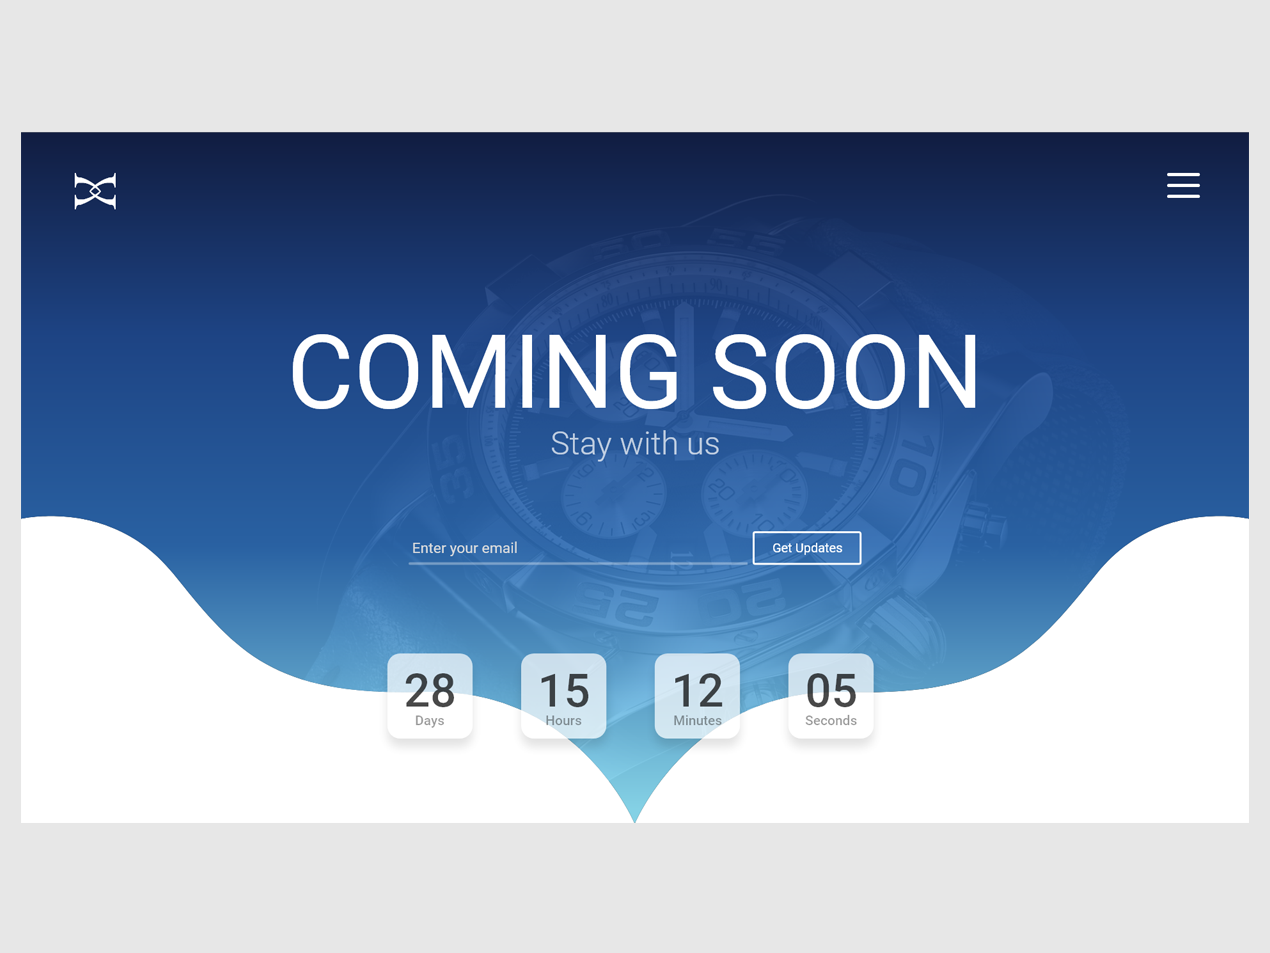 Coming Soon Page coming soon page adobe xd ui